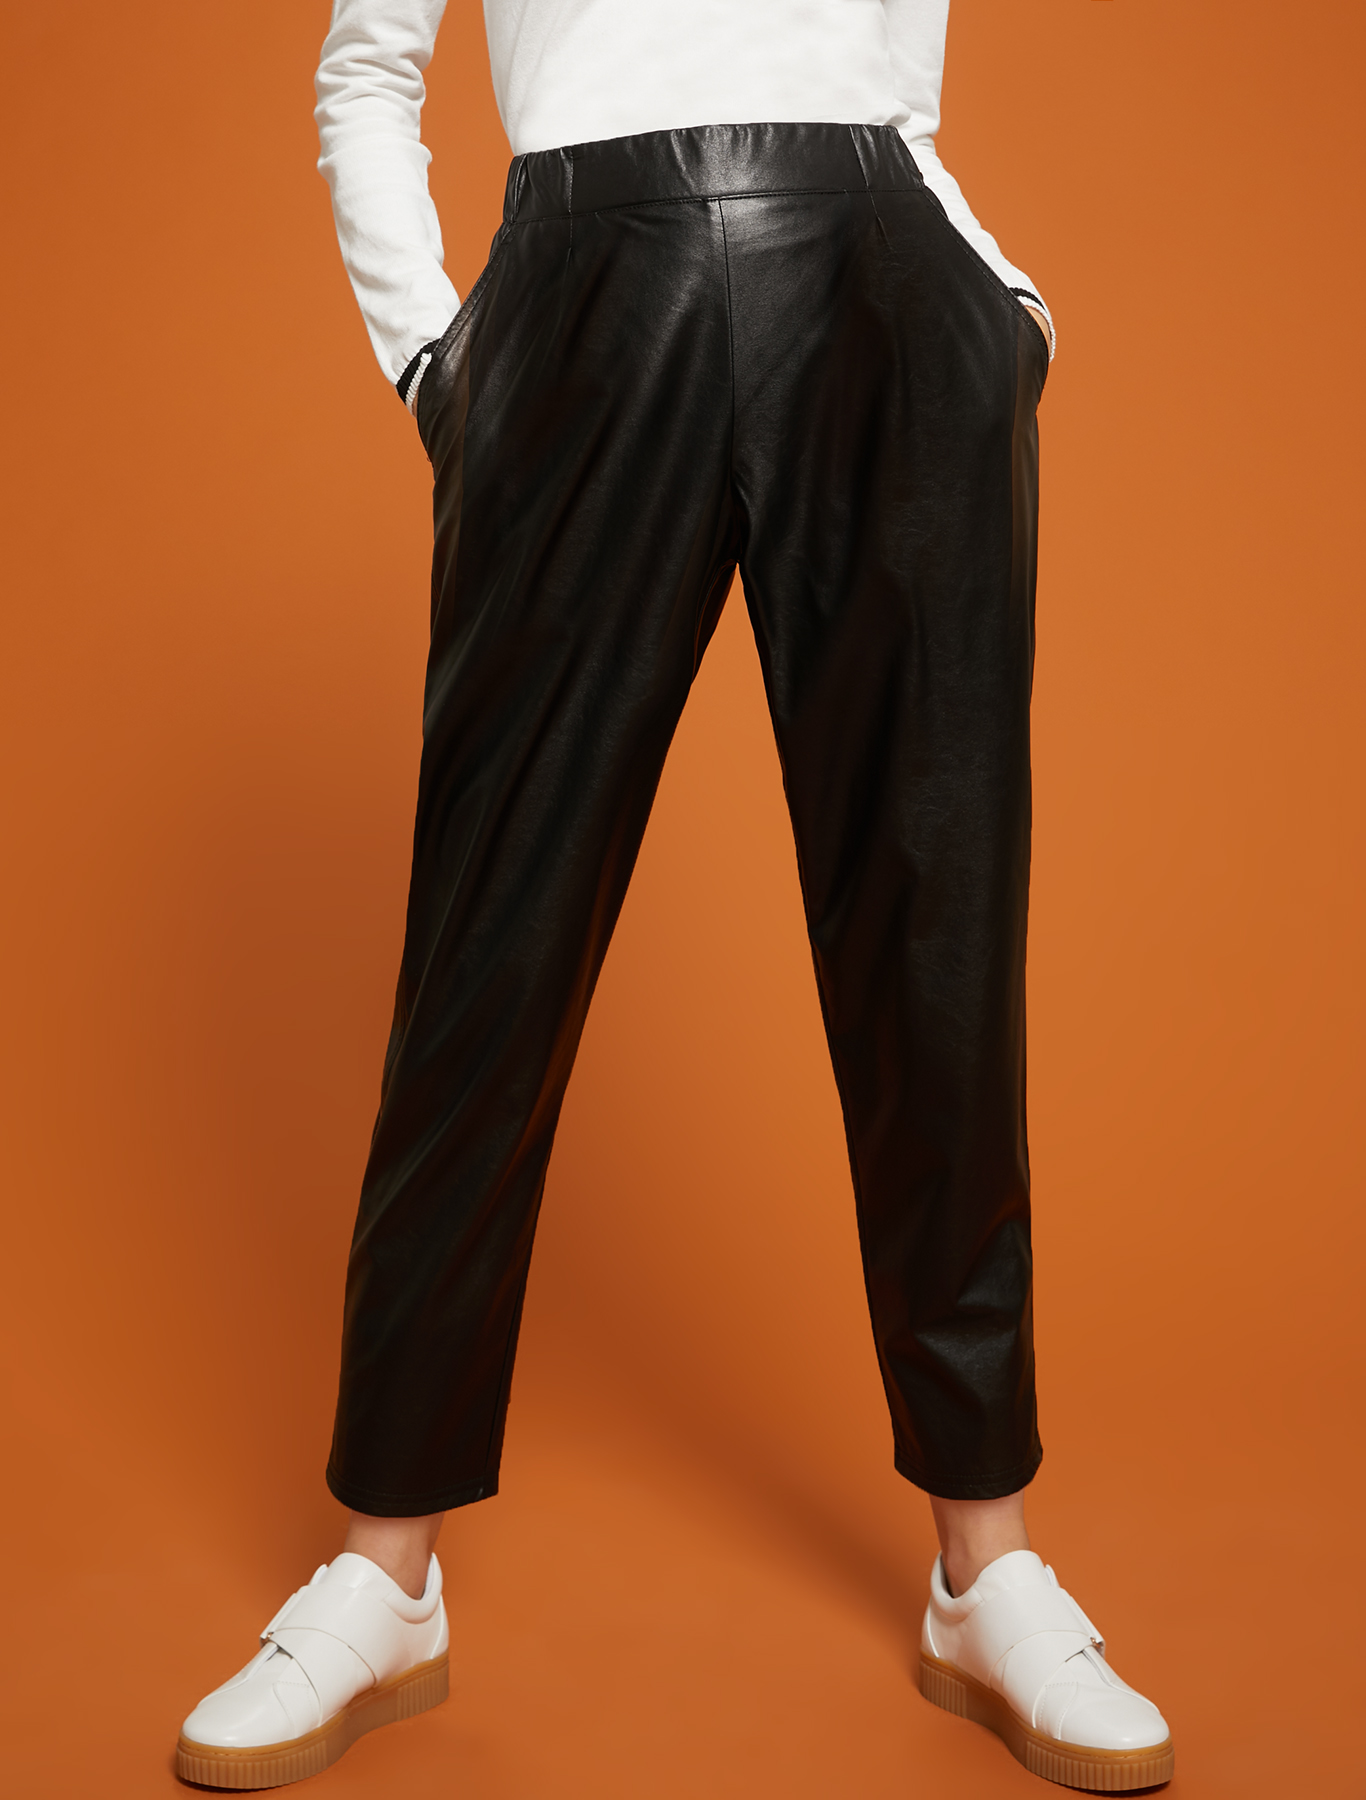 Jersey, carrot-fit trousers - black - pennyblack